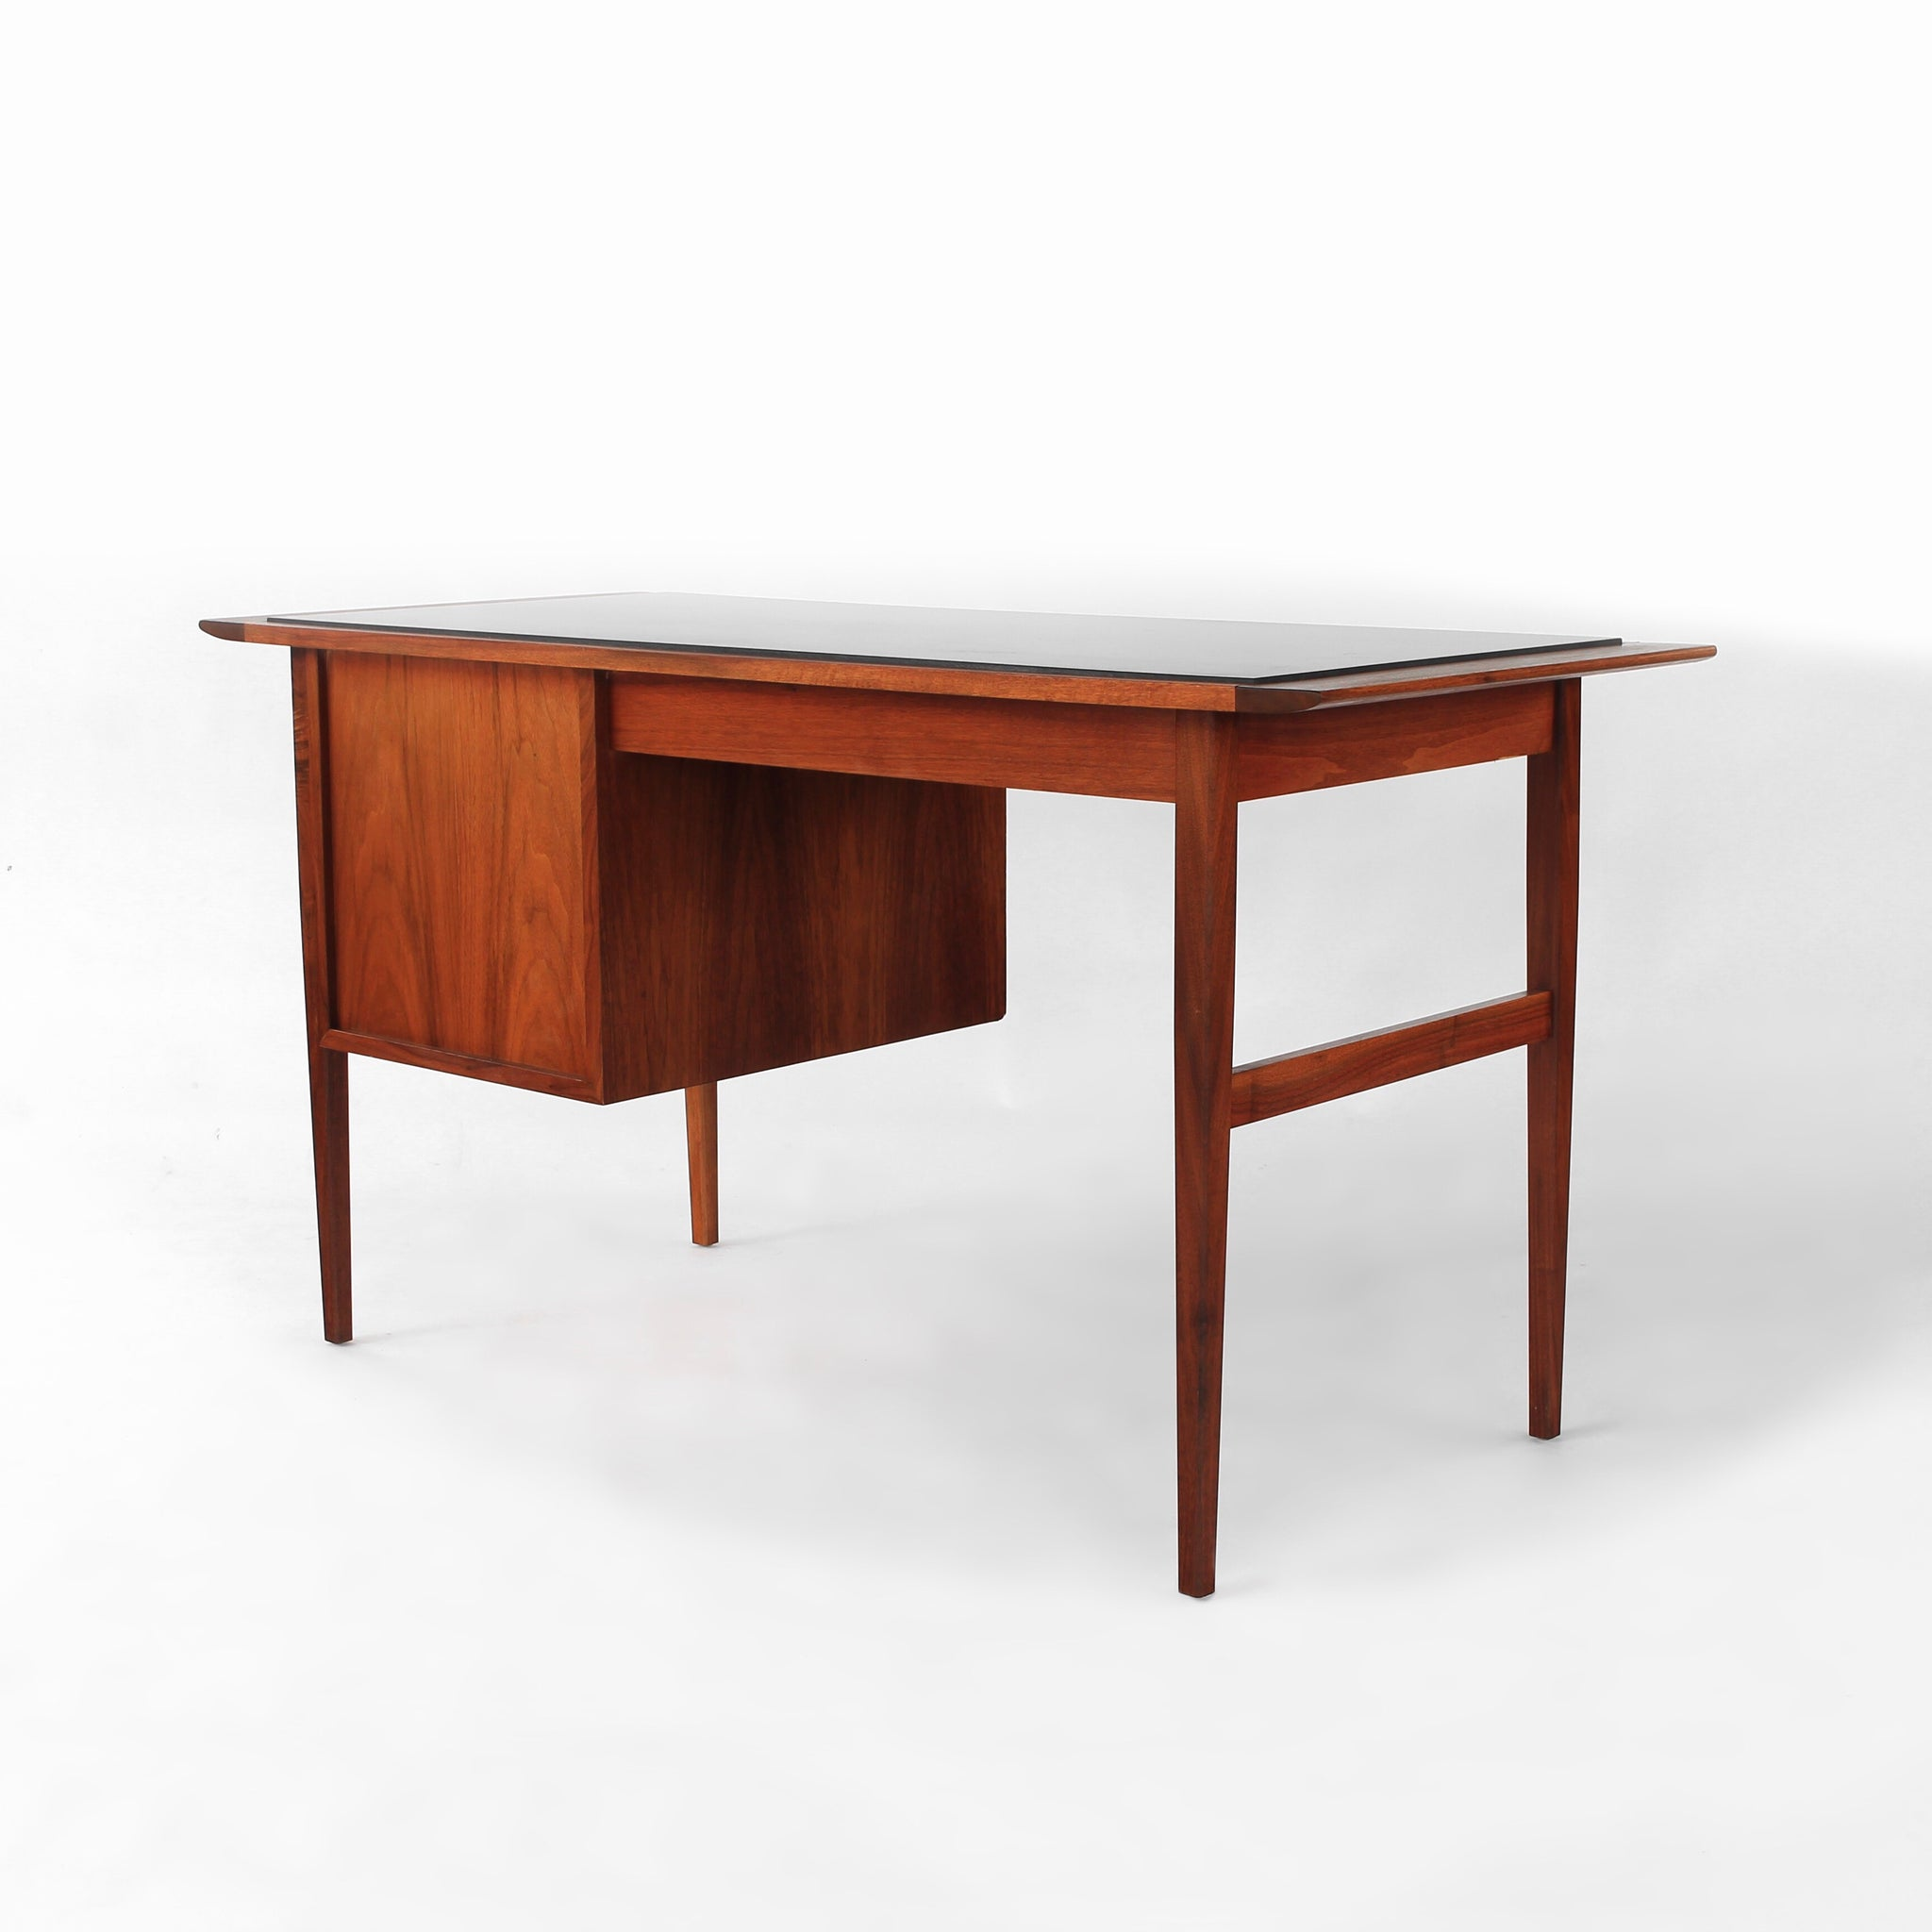 ... Load Image Into Gallery Viewer, Jack Cartwright For Founders Desk  Walnut Slate Top Vintage Mid ...